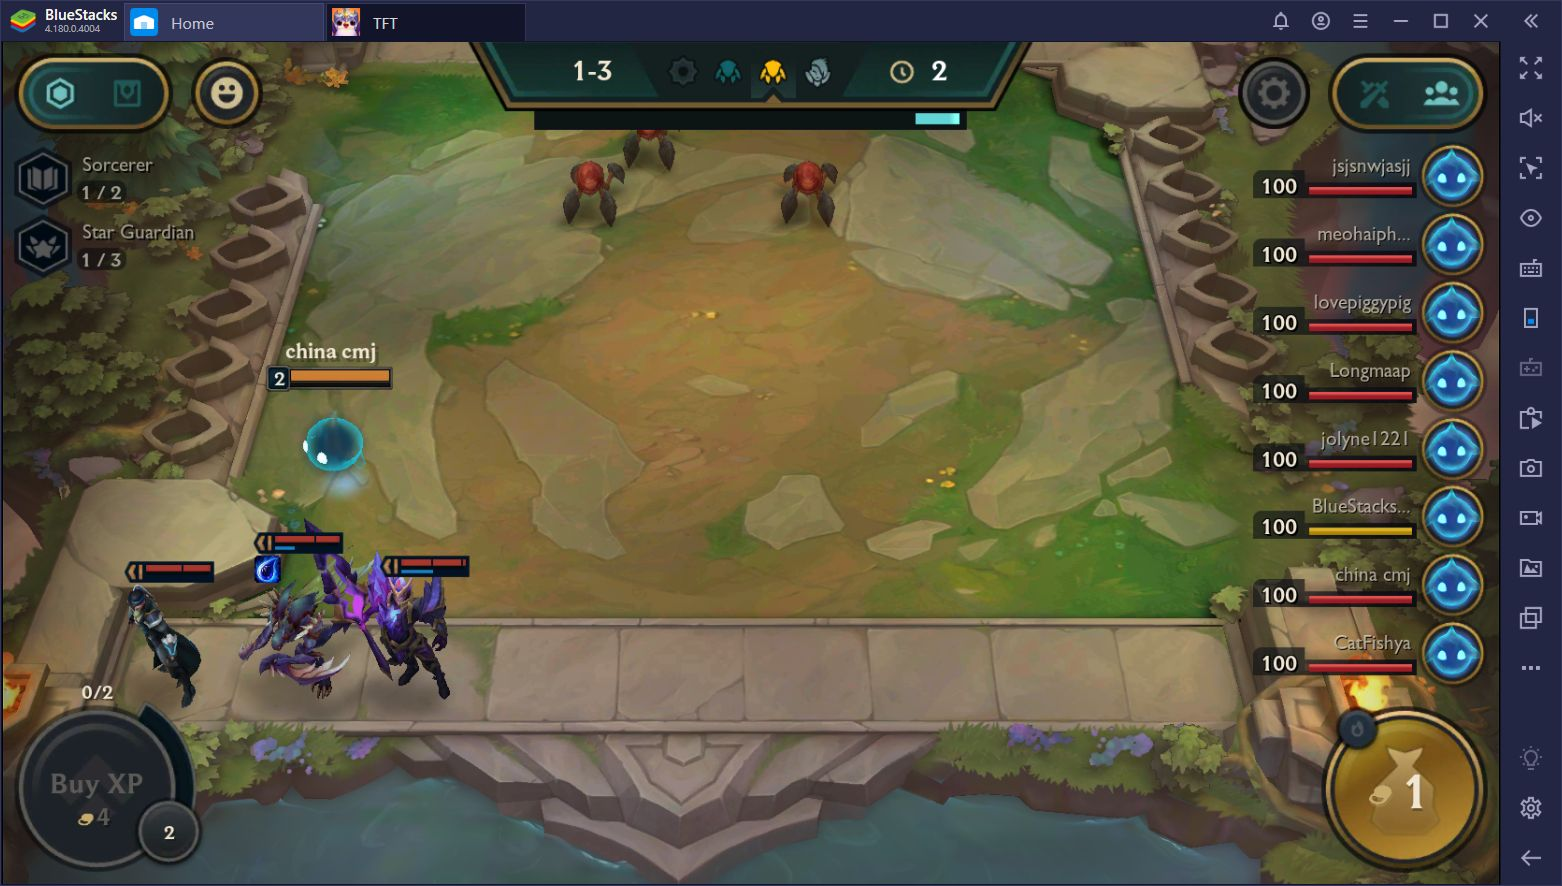 How to Get Started with Teamfight Tactics on BlueStacks